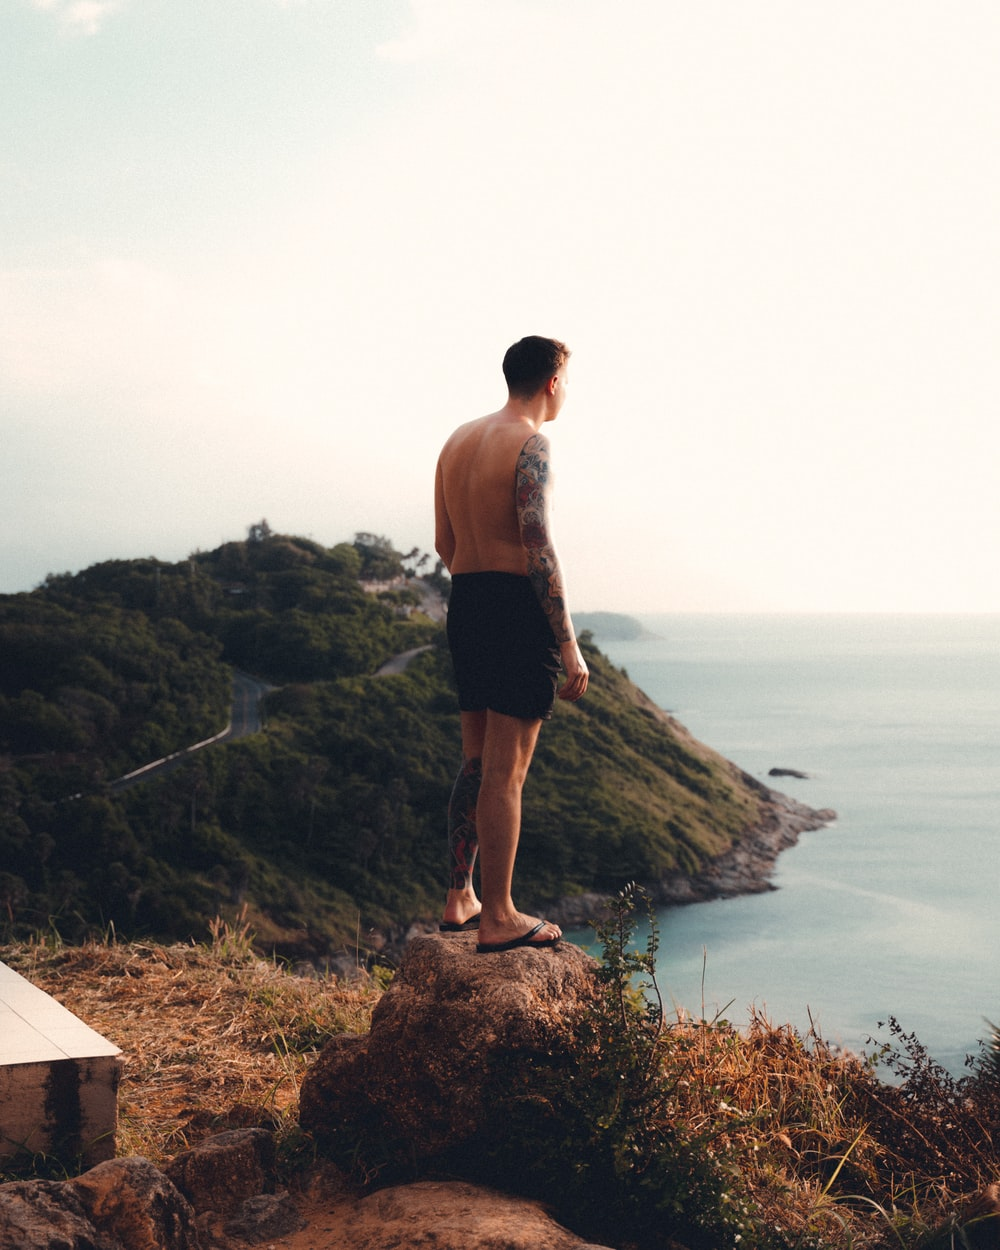 man in black shorts standing on brown rock near body of water during daytime